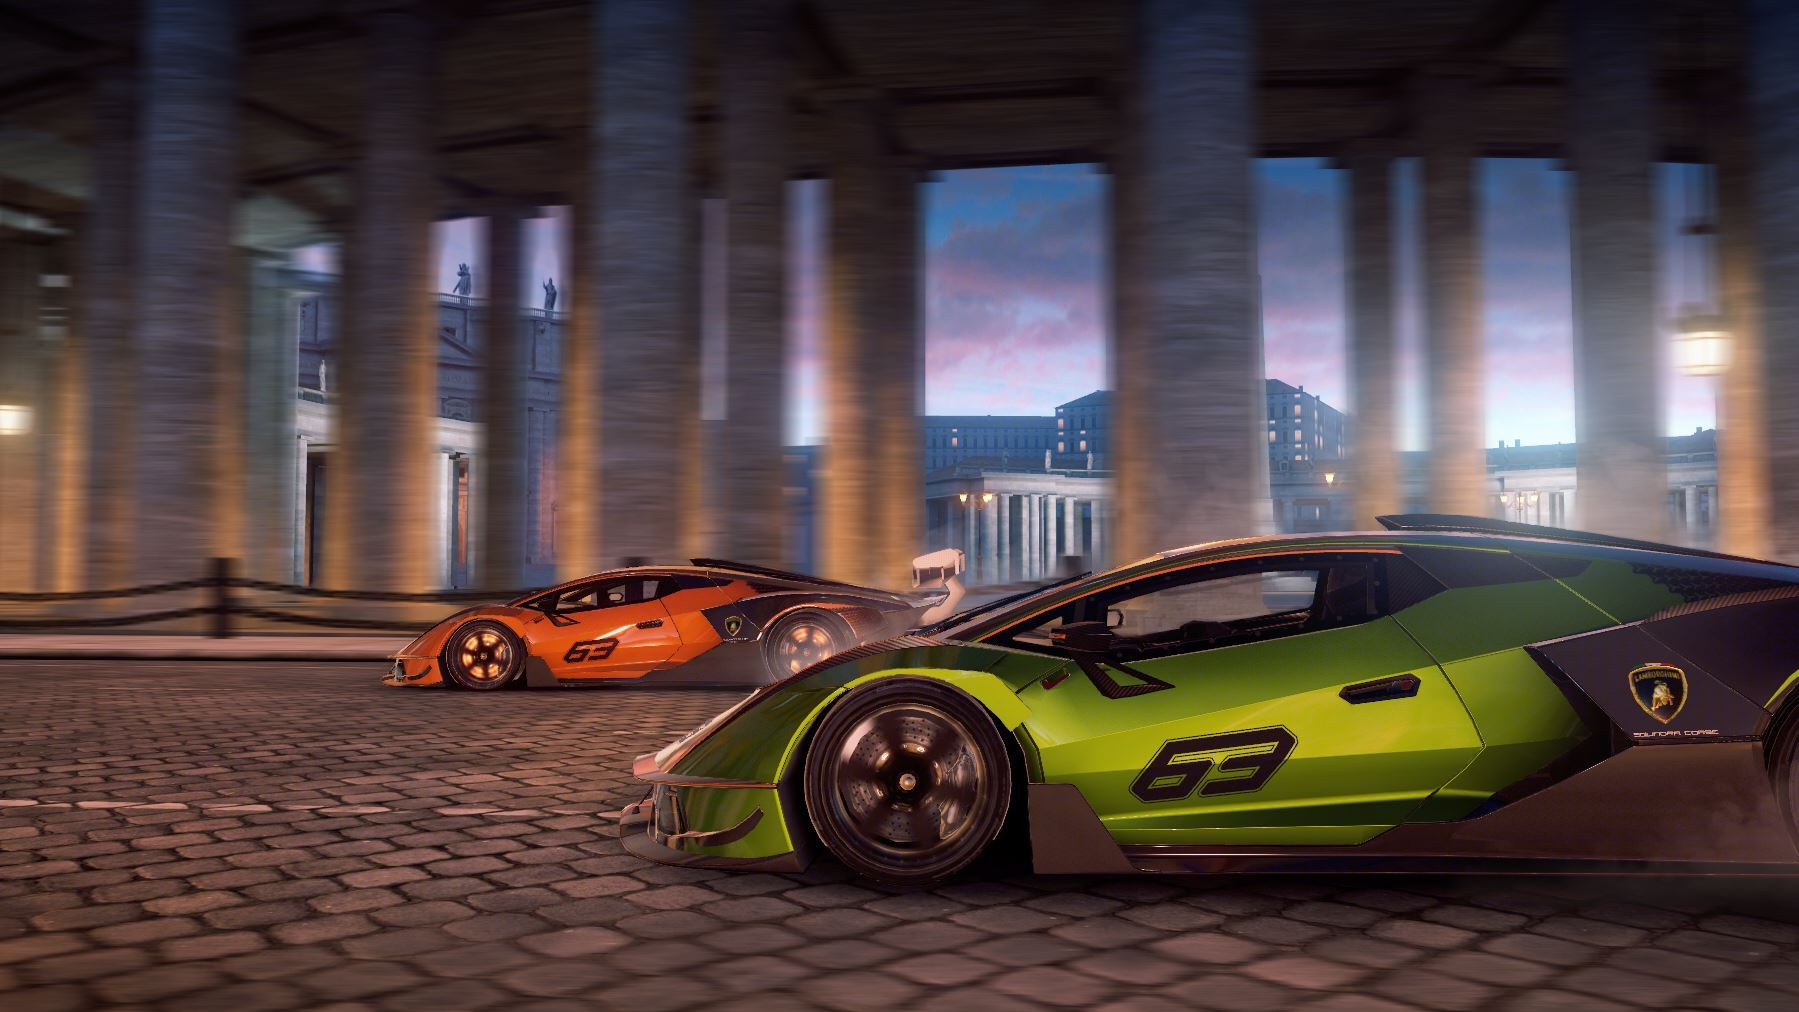 Lamborghini makes its debut in the Asphalt 9: Legends video game with the Essenza SCV12 - Image 3